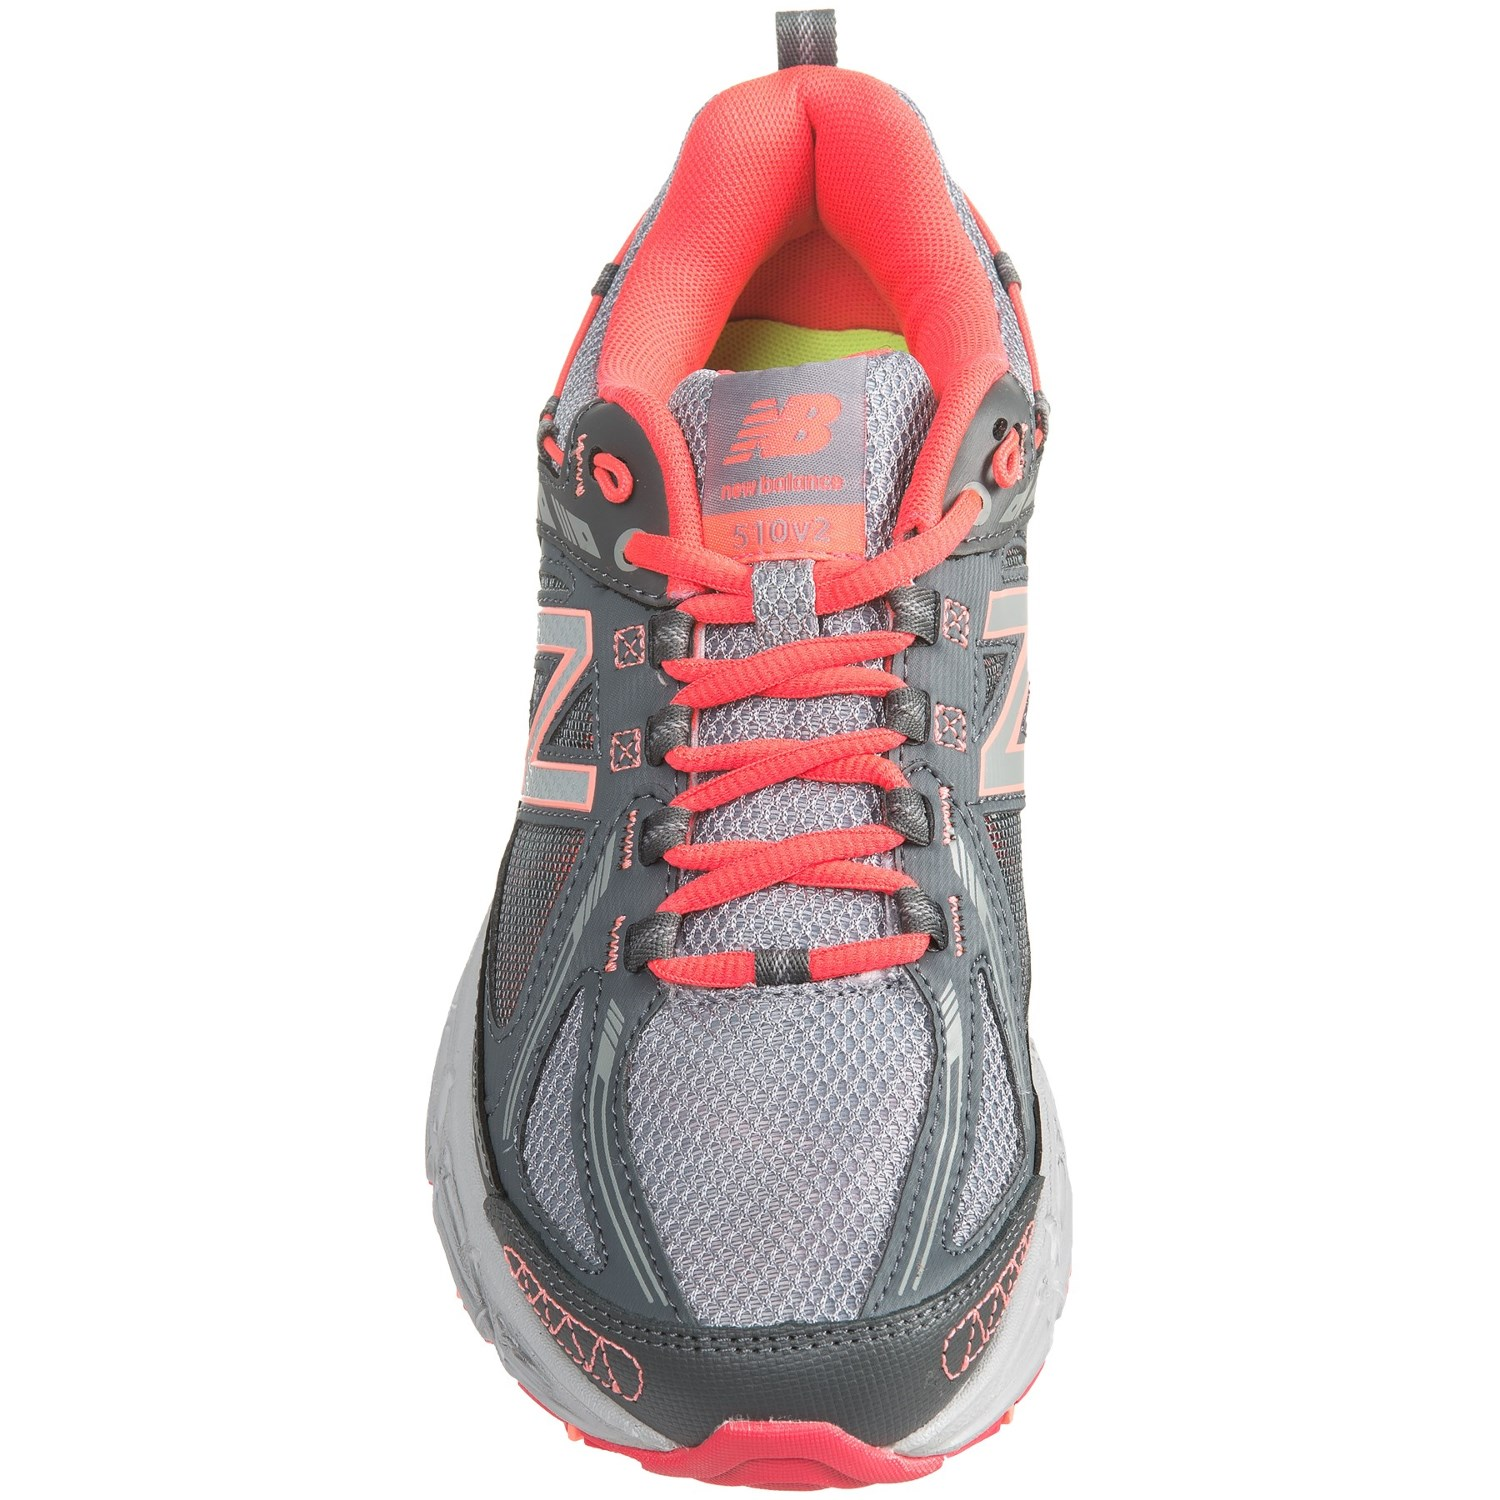 New Balance 510v2 Trail Running Shoes For Women